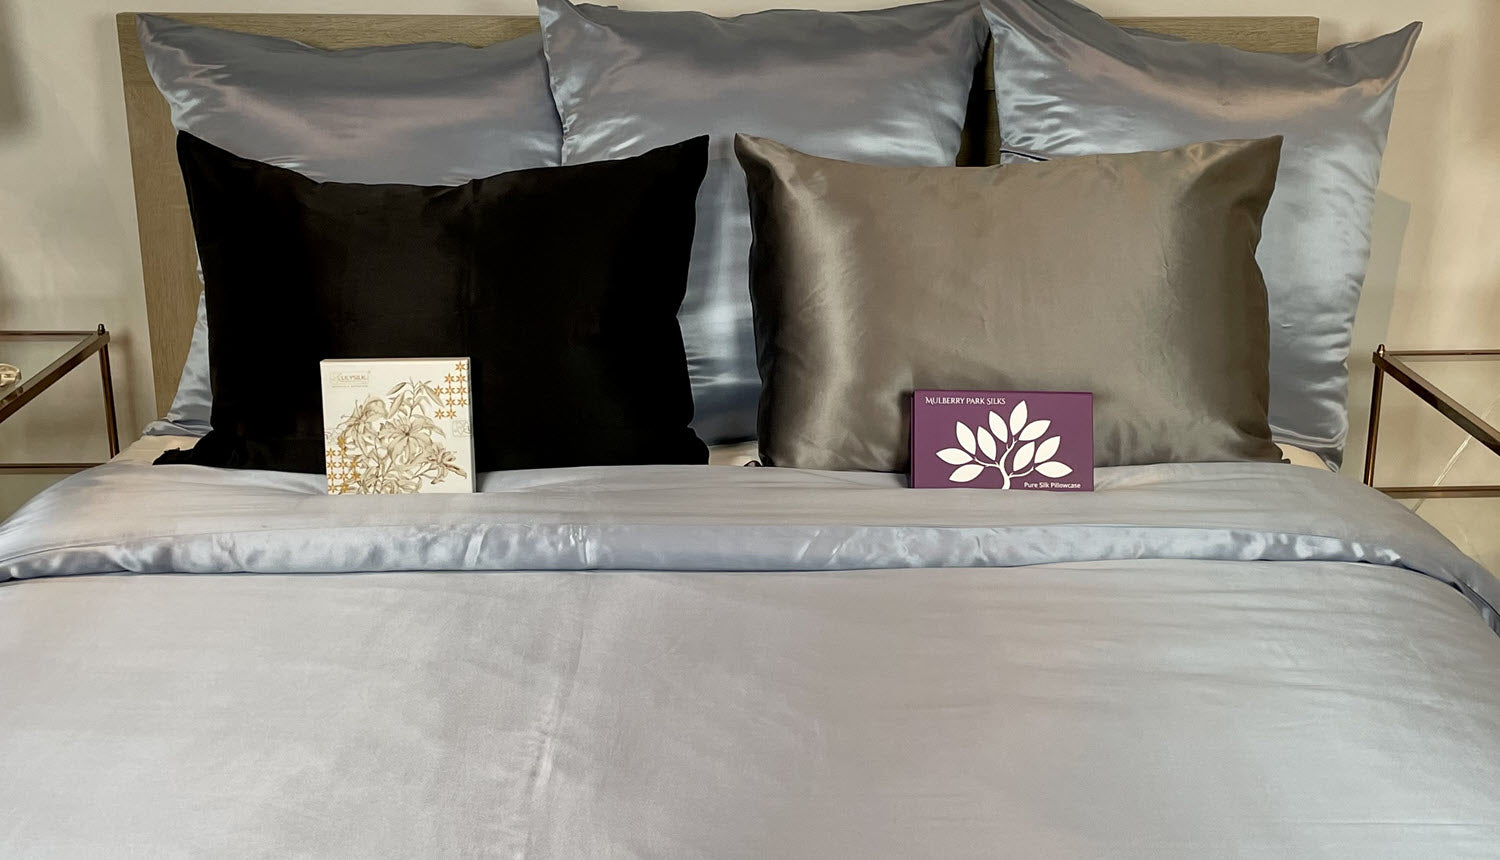 Product Review Mulberry Park Silks vs. Lilysilk pillowcase review